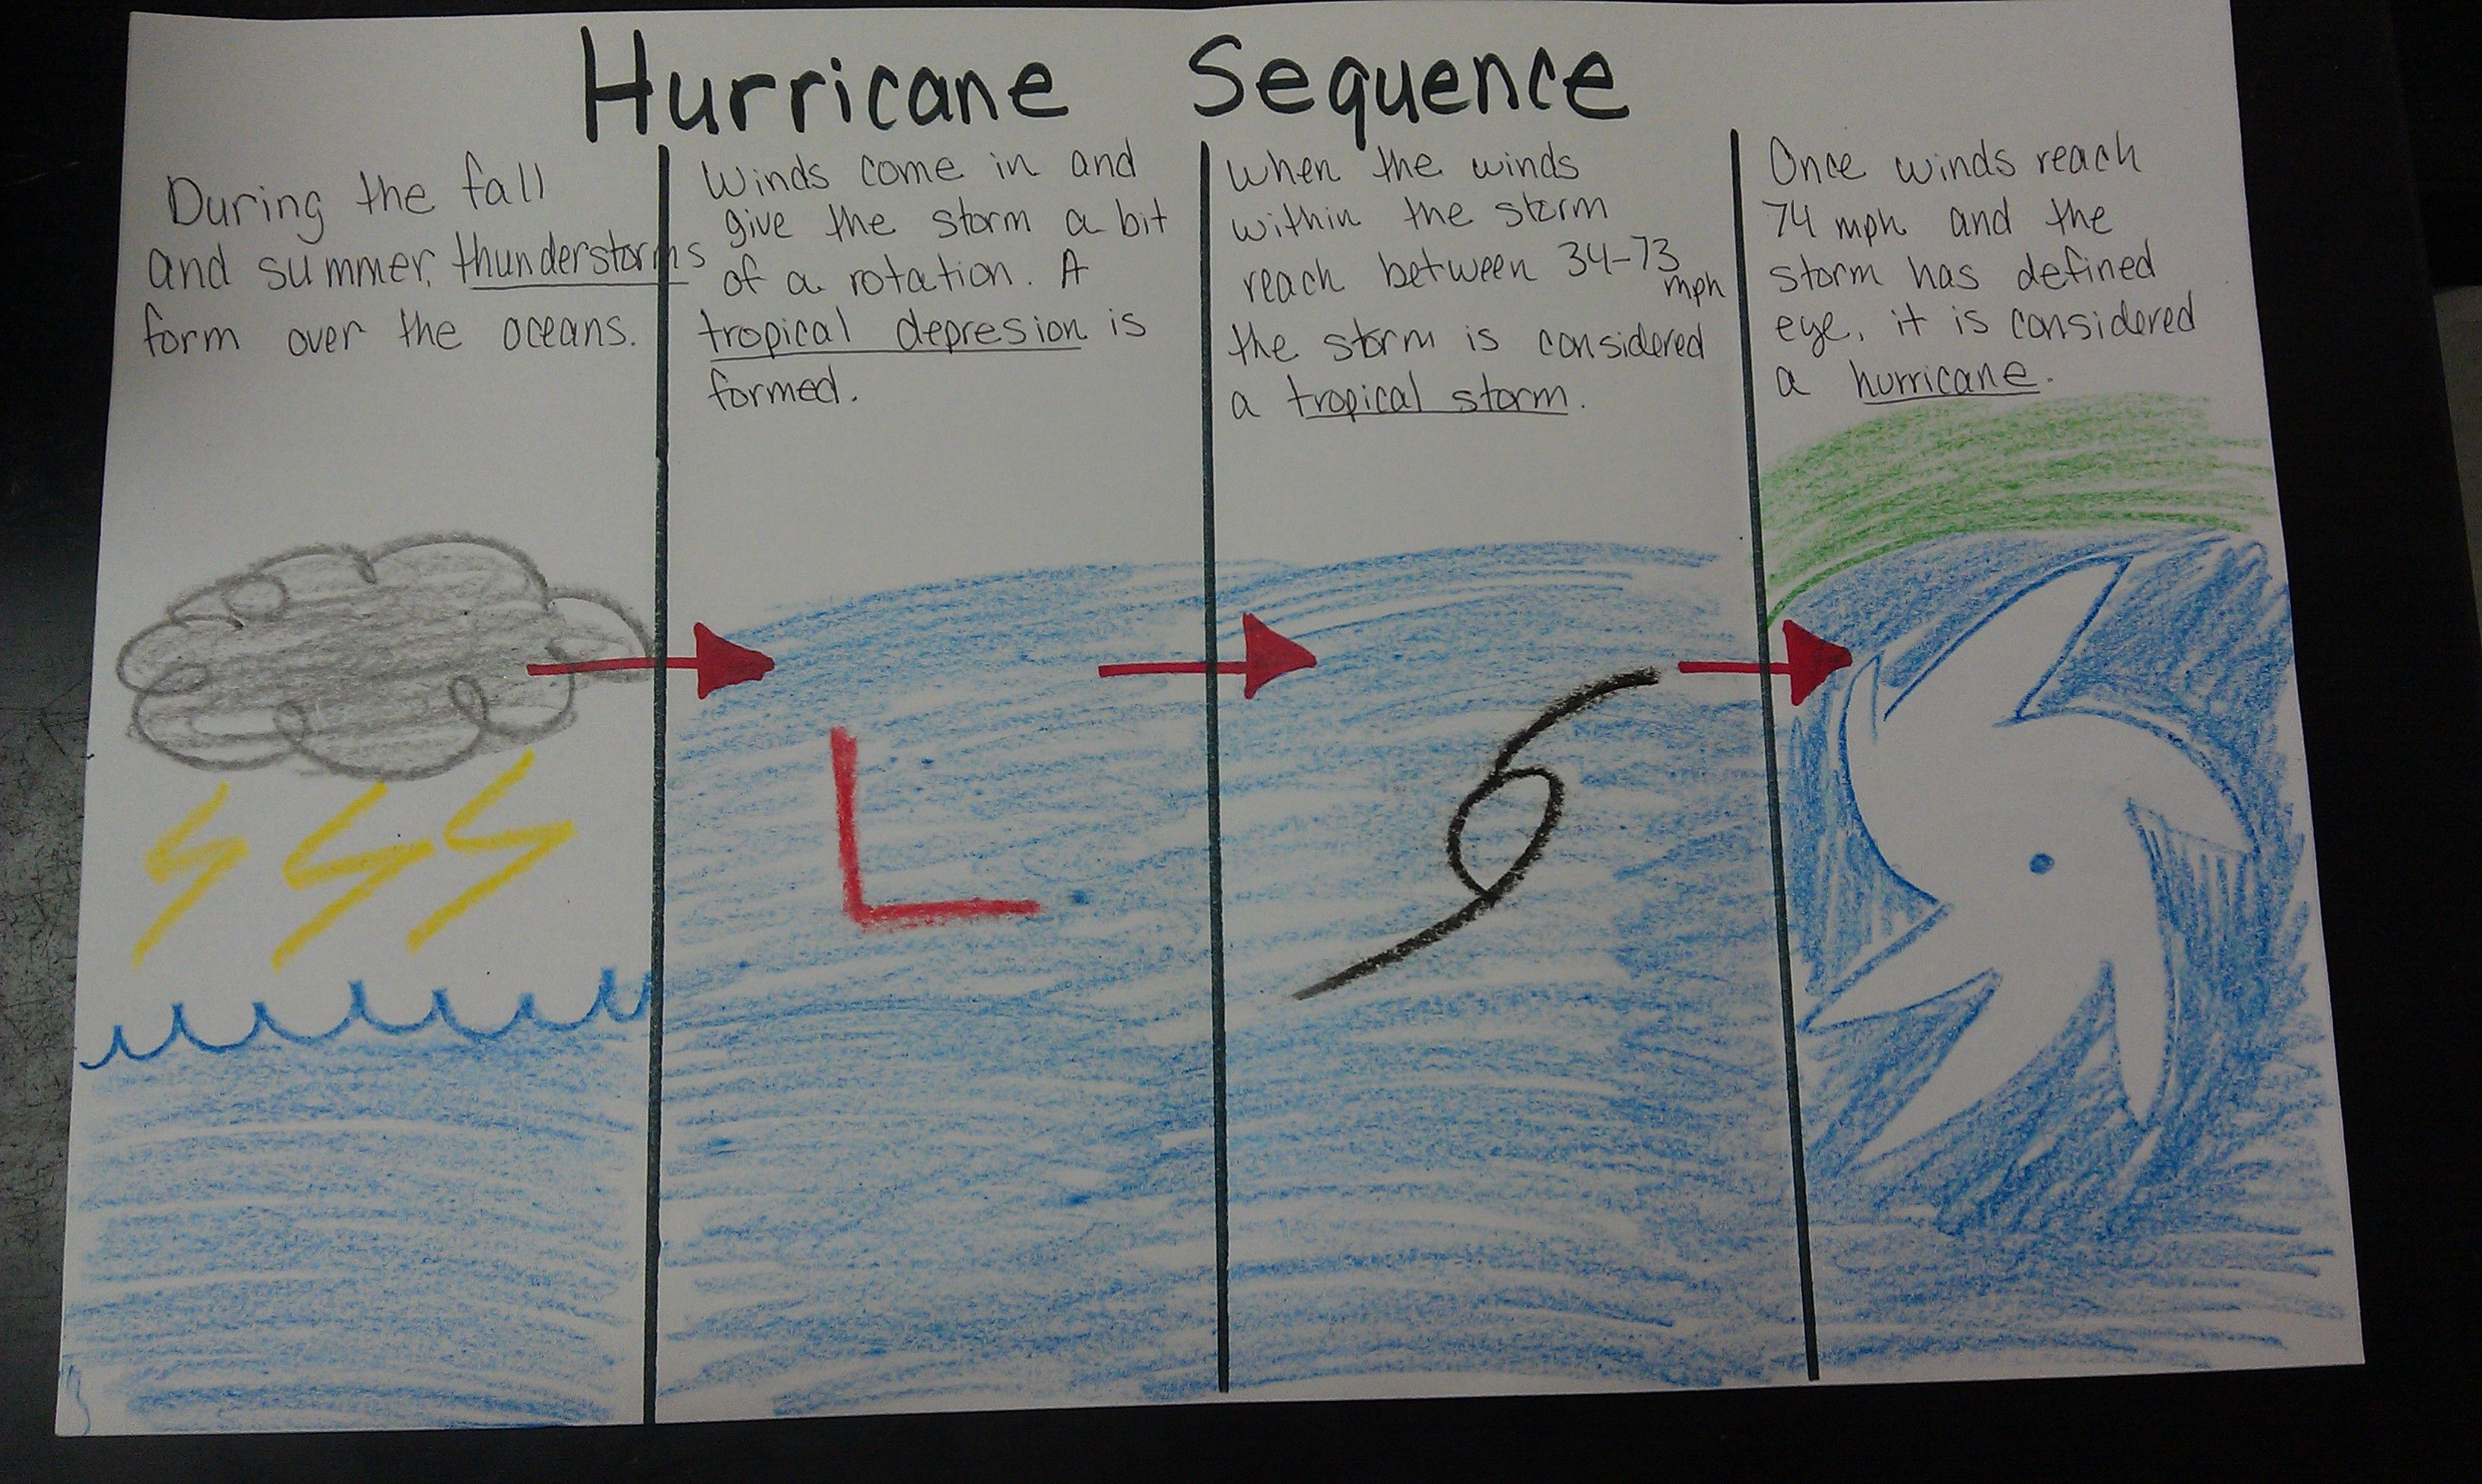 Hurricane Formation Sequence